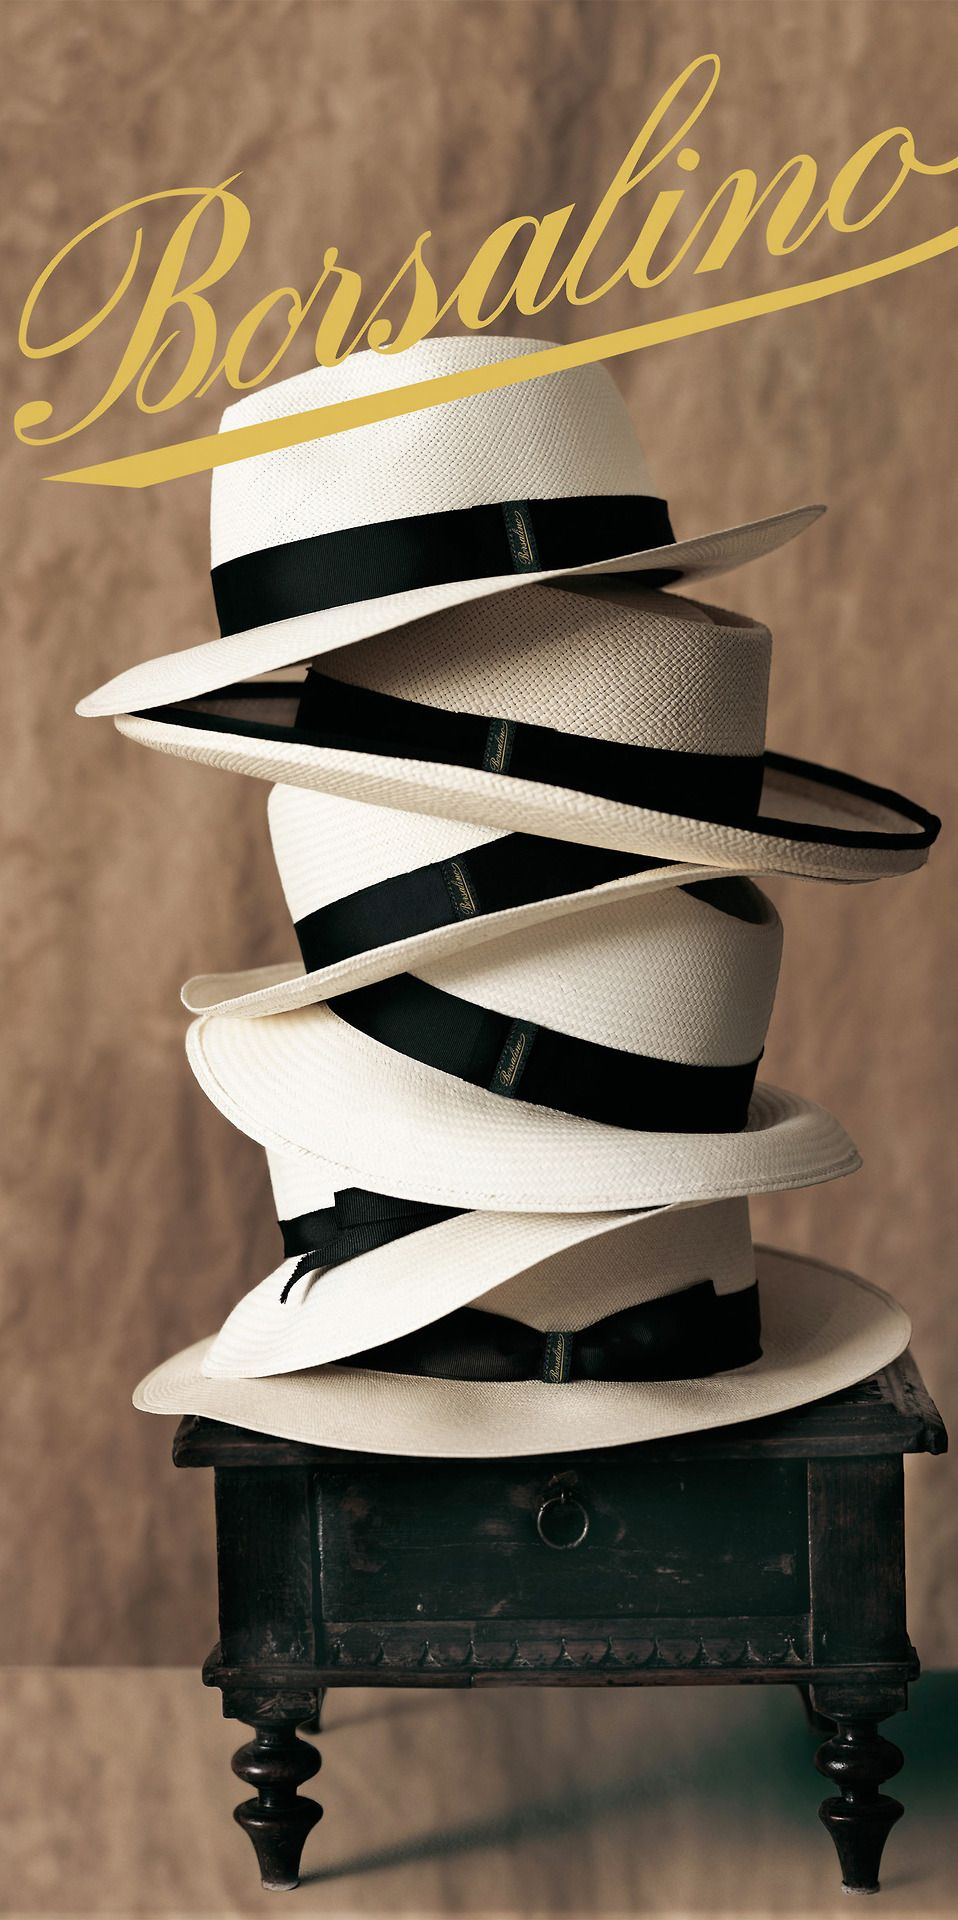 Since 1857 Borsalino has been producing its famous fedoras in their factory  in Alessandria f599a24d040a